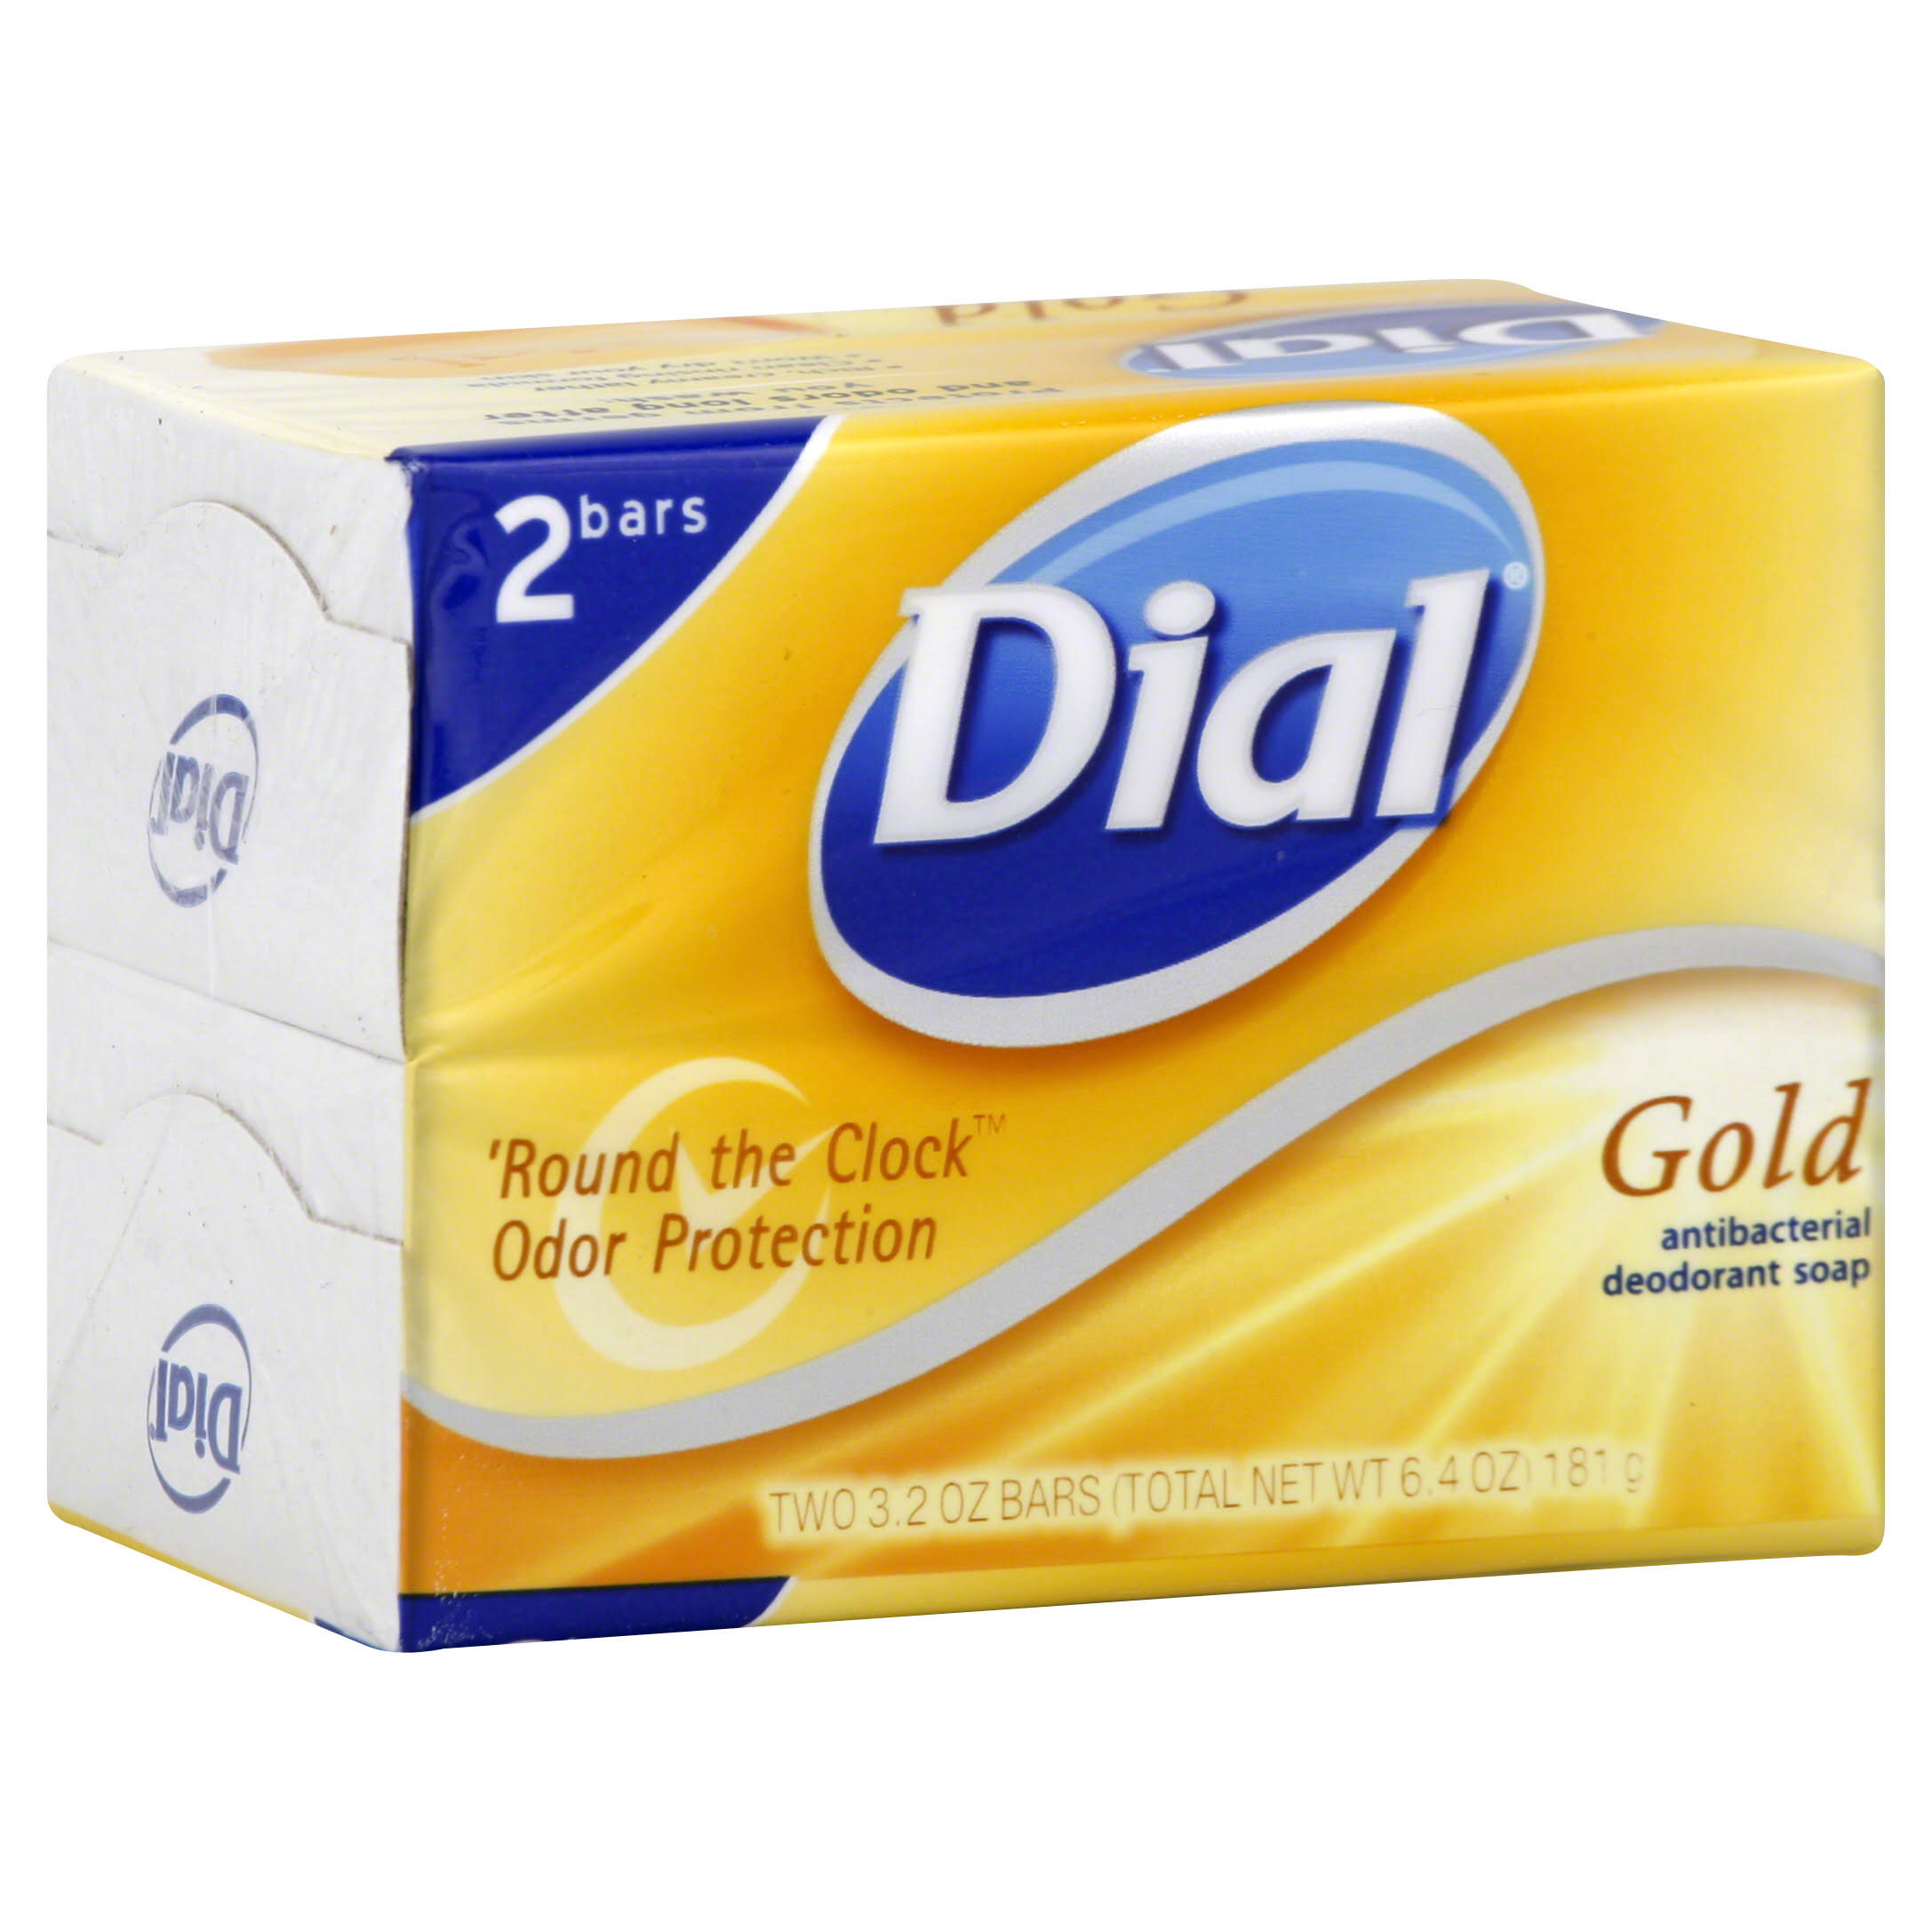 Dial Gold Antibacterial Deodorant Bar Soap - 2pk